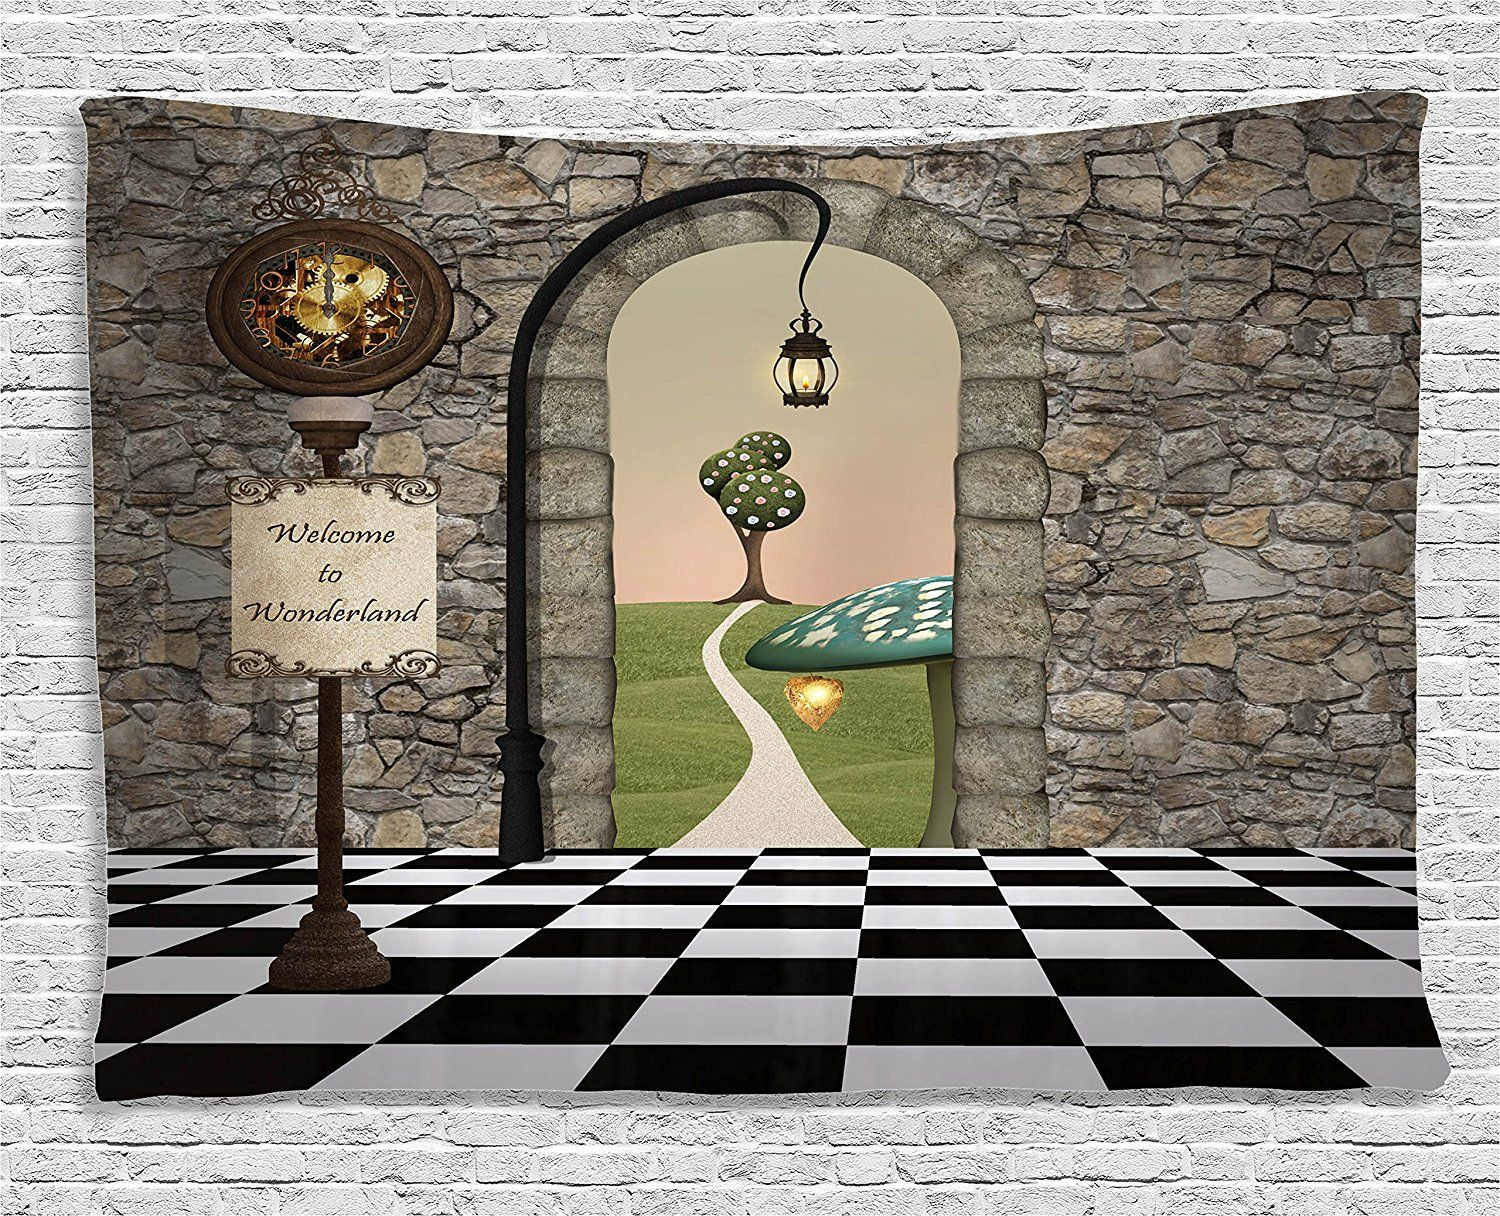 Pin By Madeleine Ward On Alice In Wonderland Alice In Wonderland Illustrations Alice In Wonderland Photography Backdrop